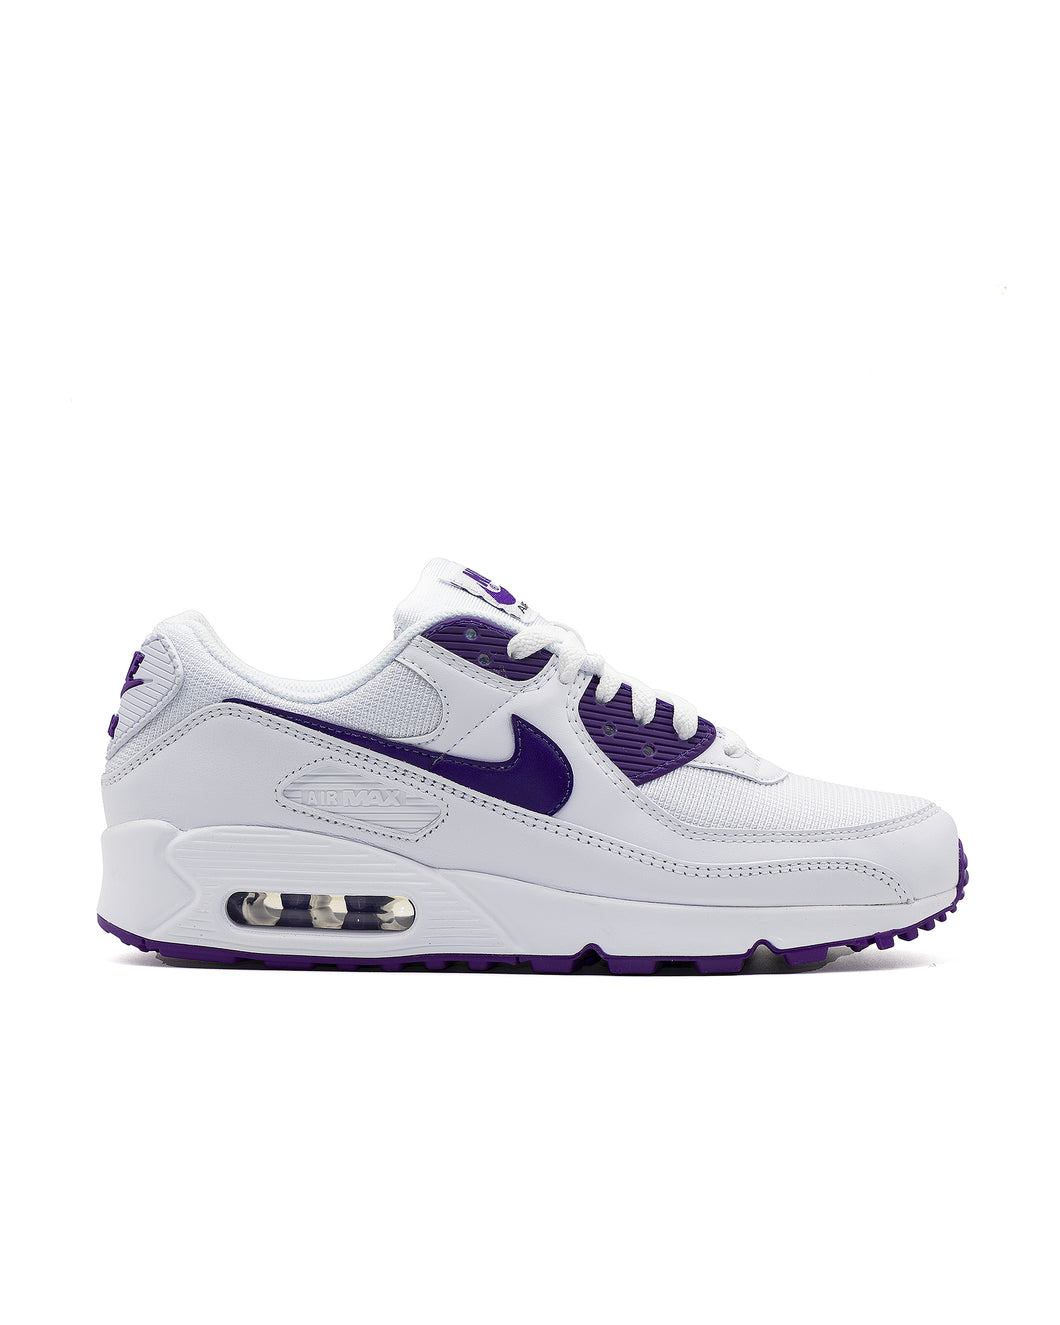 Nike Air Max 90 White/Voltage Purple-Black